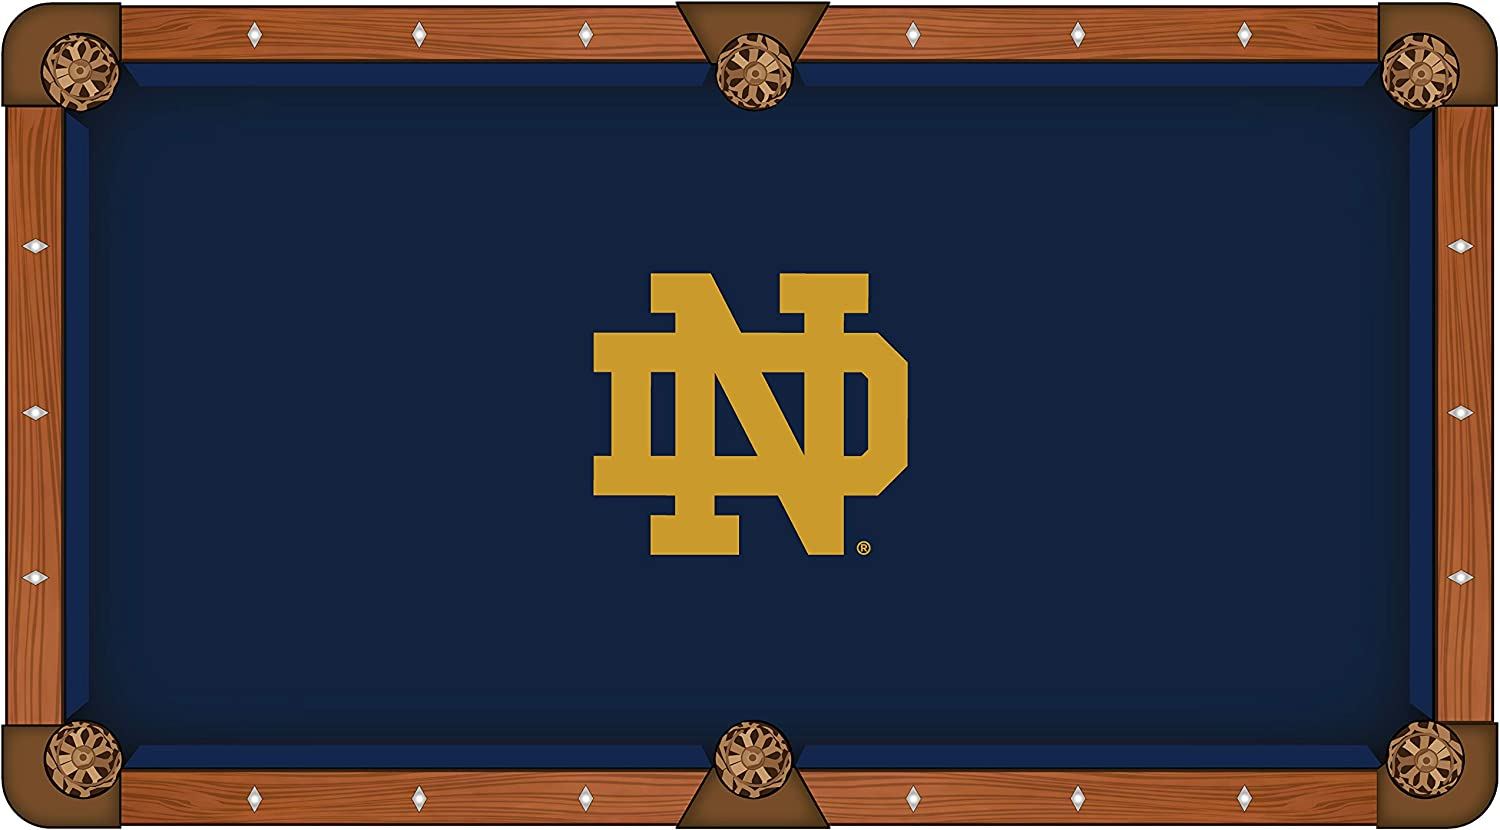 Holland Leiste Stool Co. Notre Dame Fighting Irish Navy mit Tan Nd Logo Billiard Pool Table Cloth